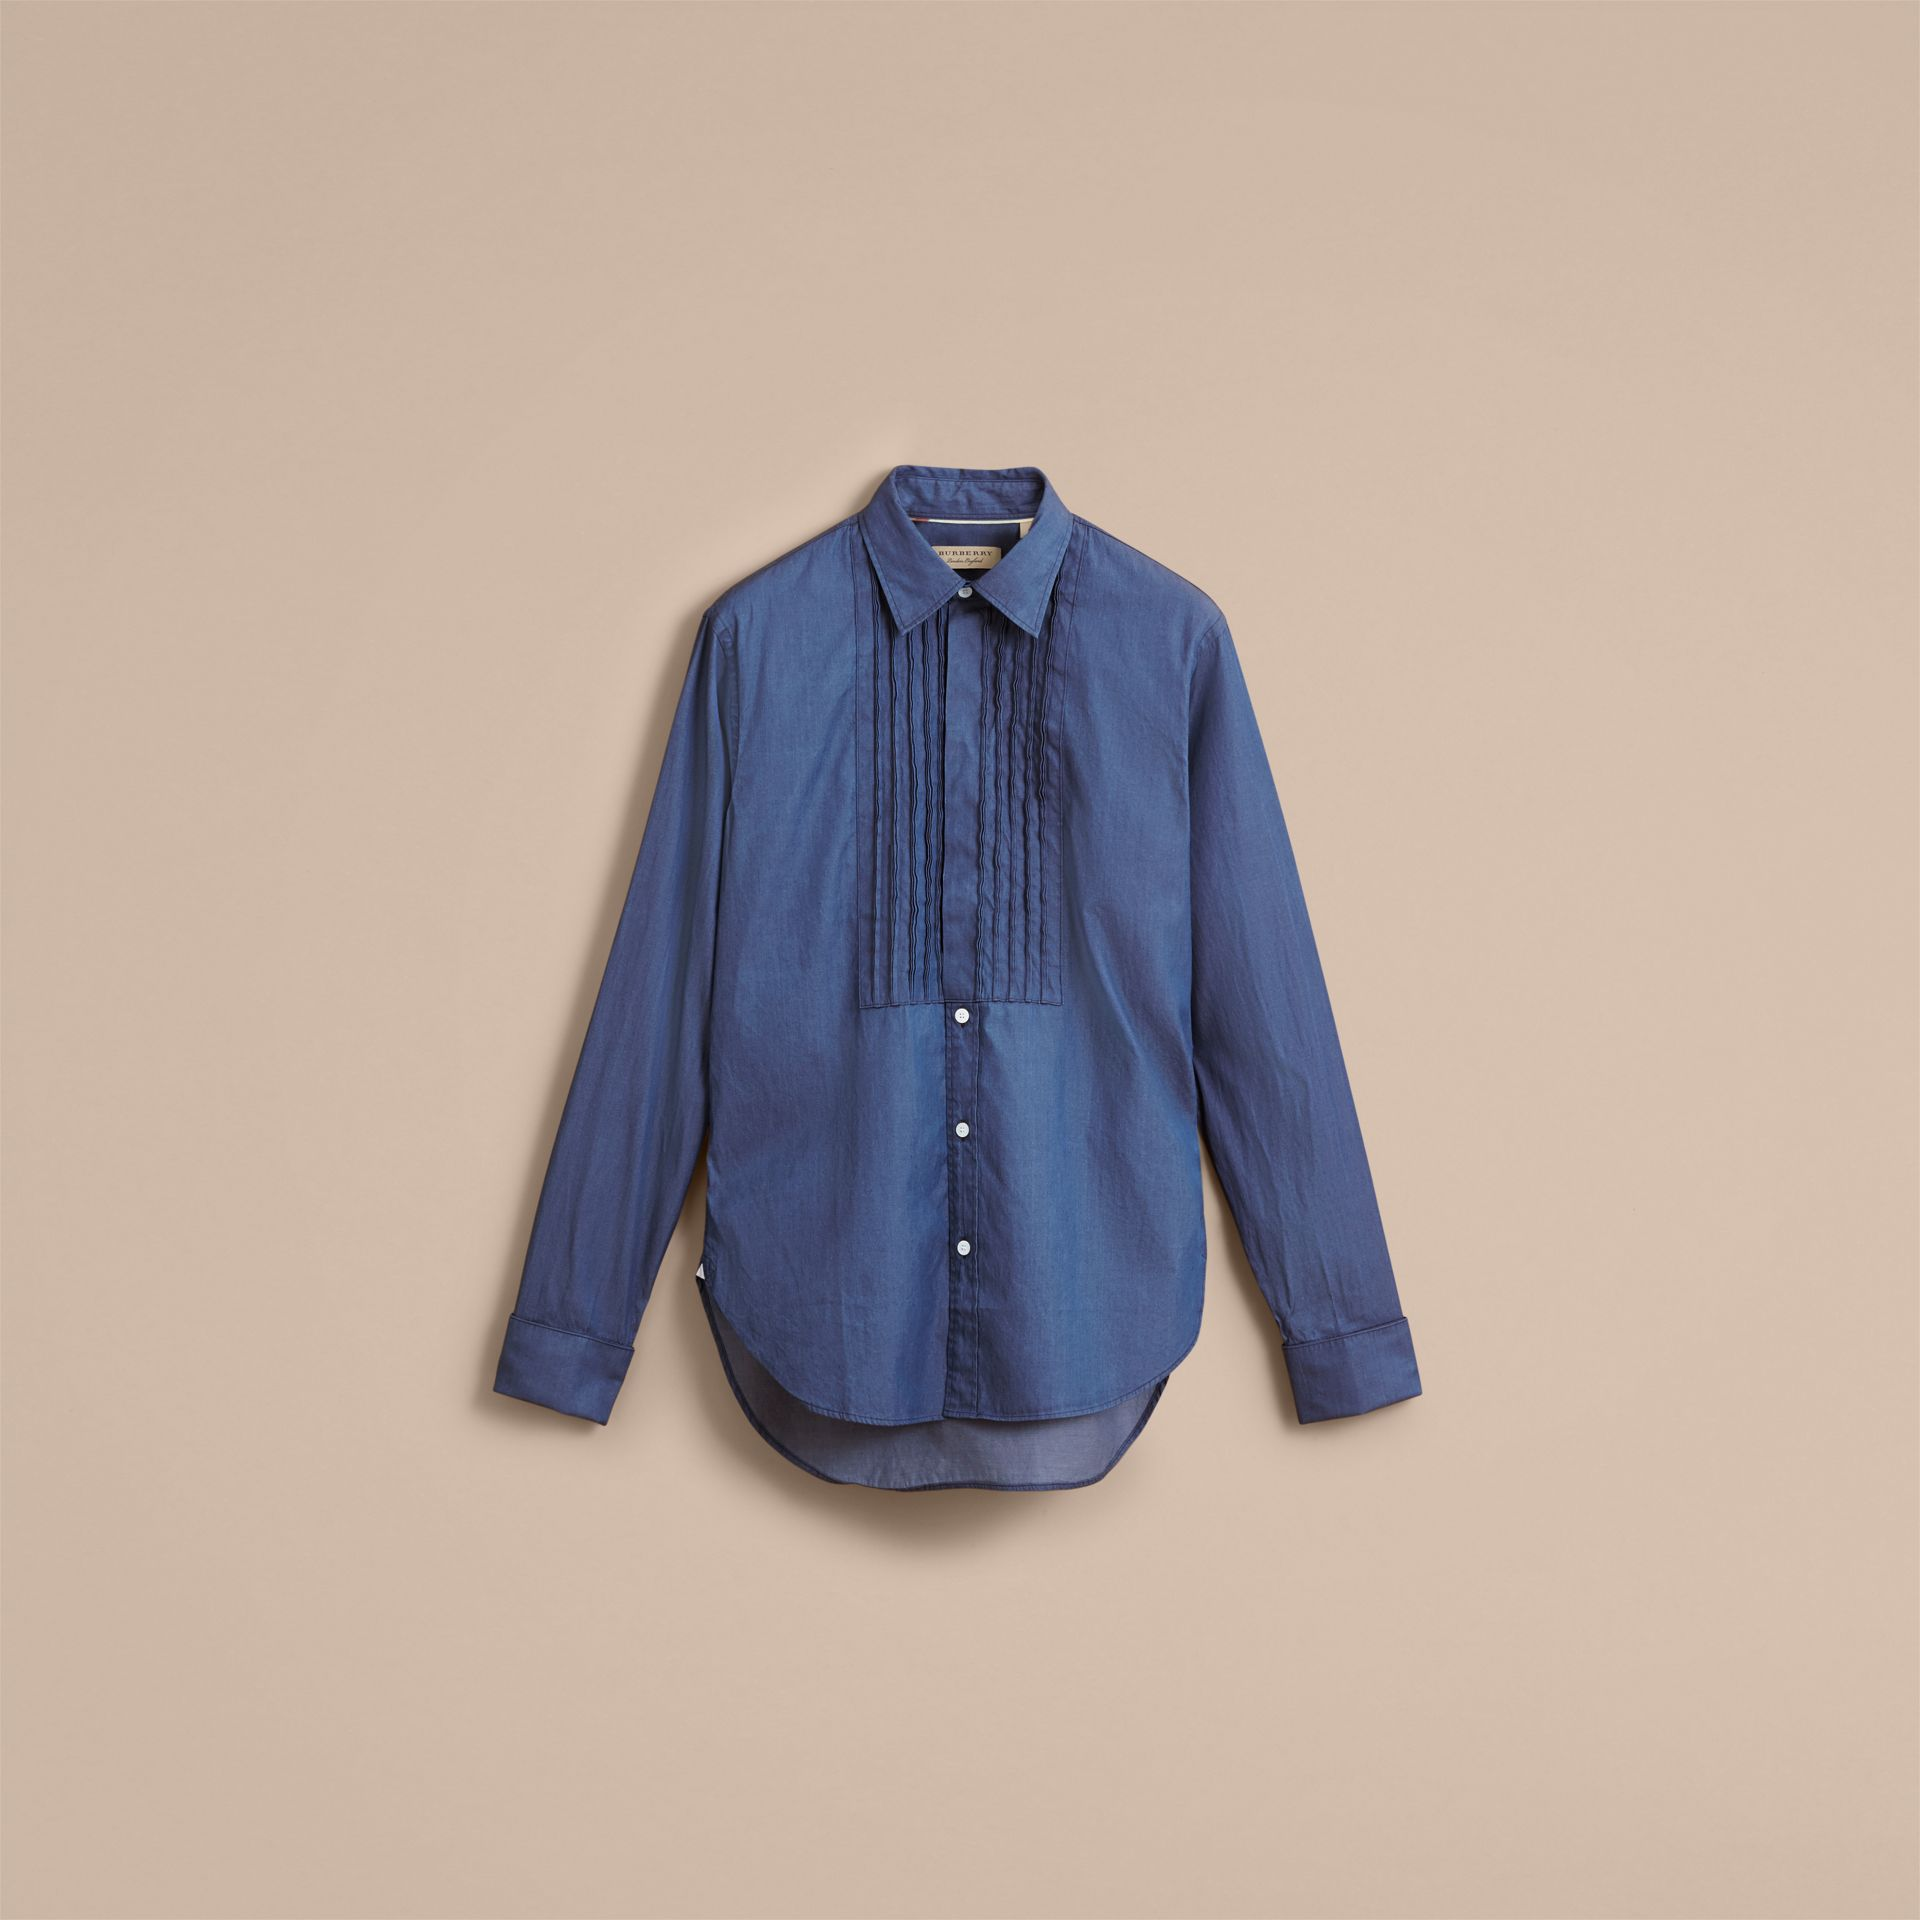 Unisex Double-cuff Pintuck Bib Cotton Shirt in Denim Blue - Women | Burberry Singapore - gallery image 4